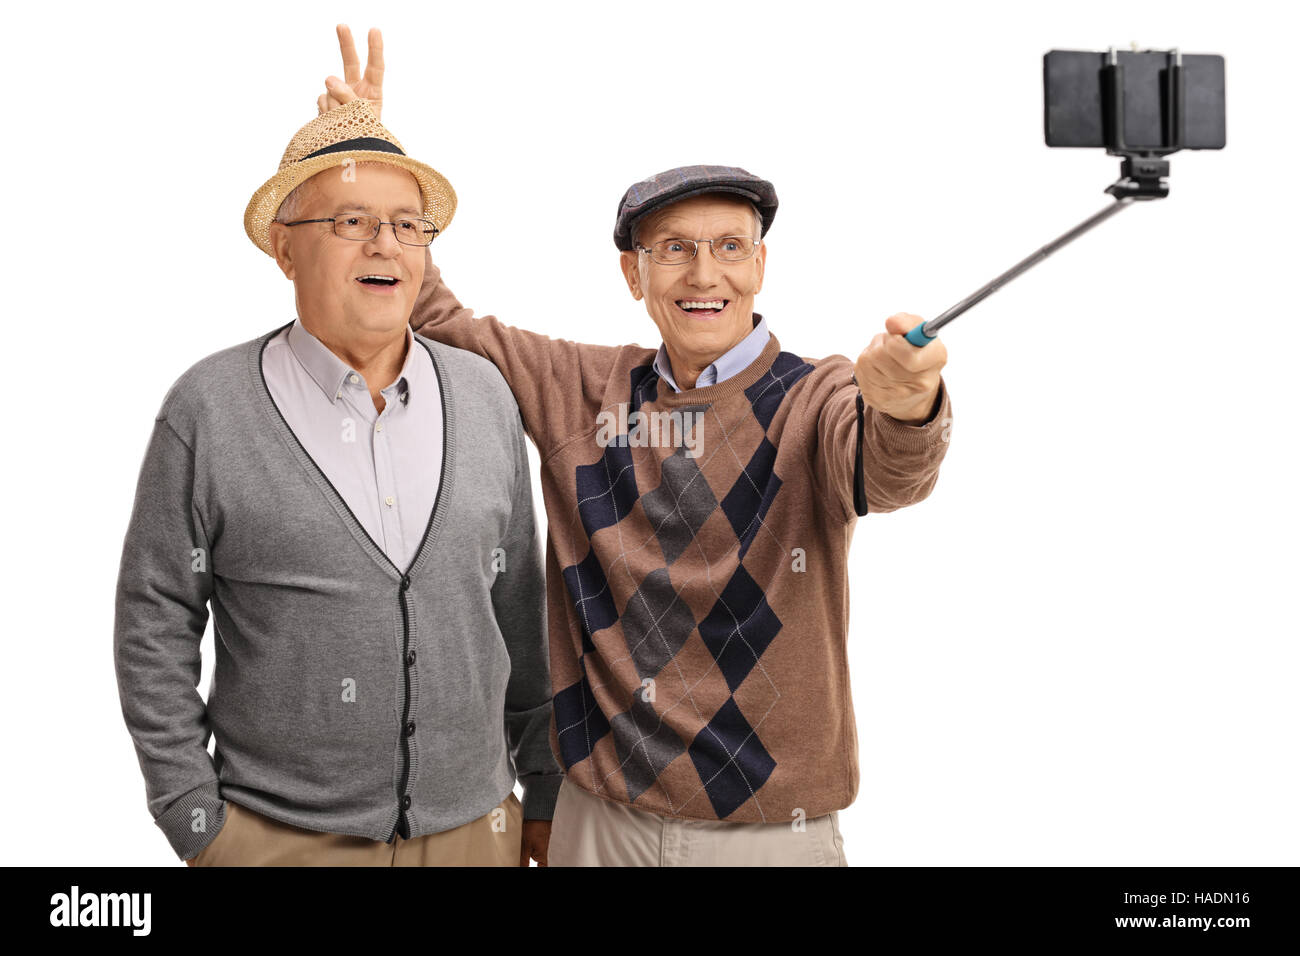 Elderly man pranking another man with bunny ears and taking a selfie with a stick isolated on white background - Stock Image